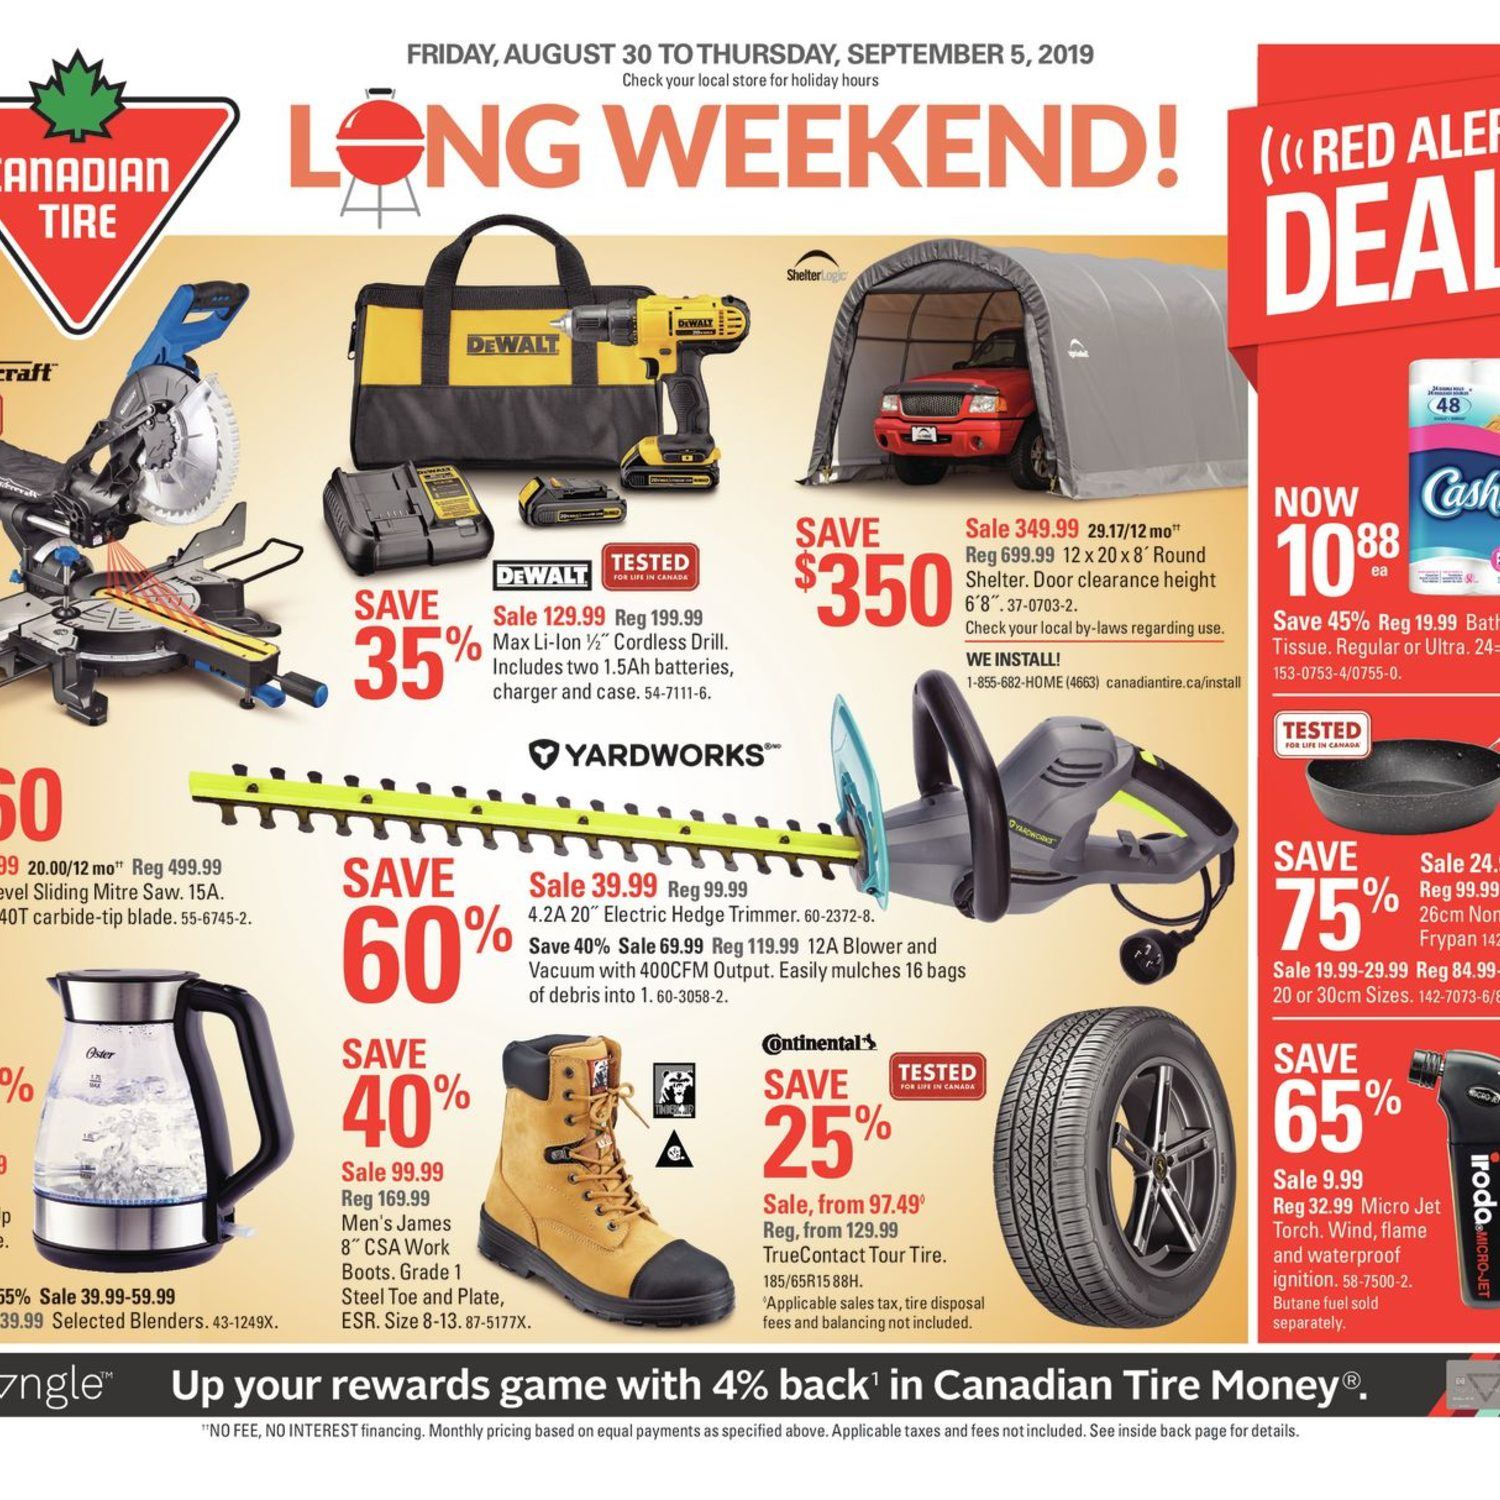 Canadian Tire Weekly Flyer Weekly Long Weekend Aug 30 Sep 5 Redflagdeals Com